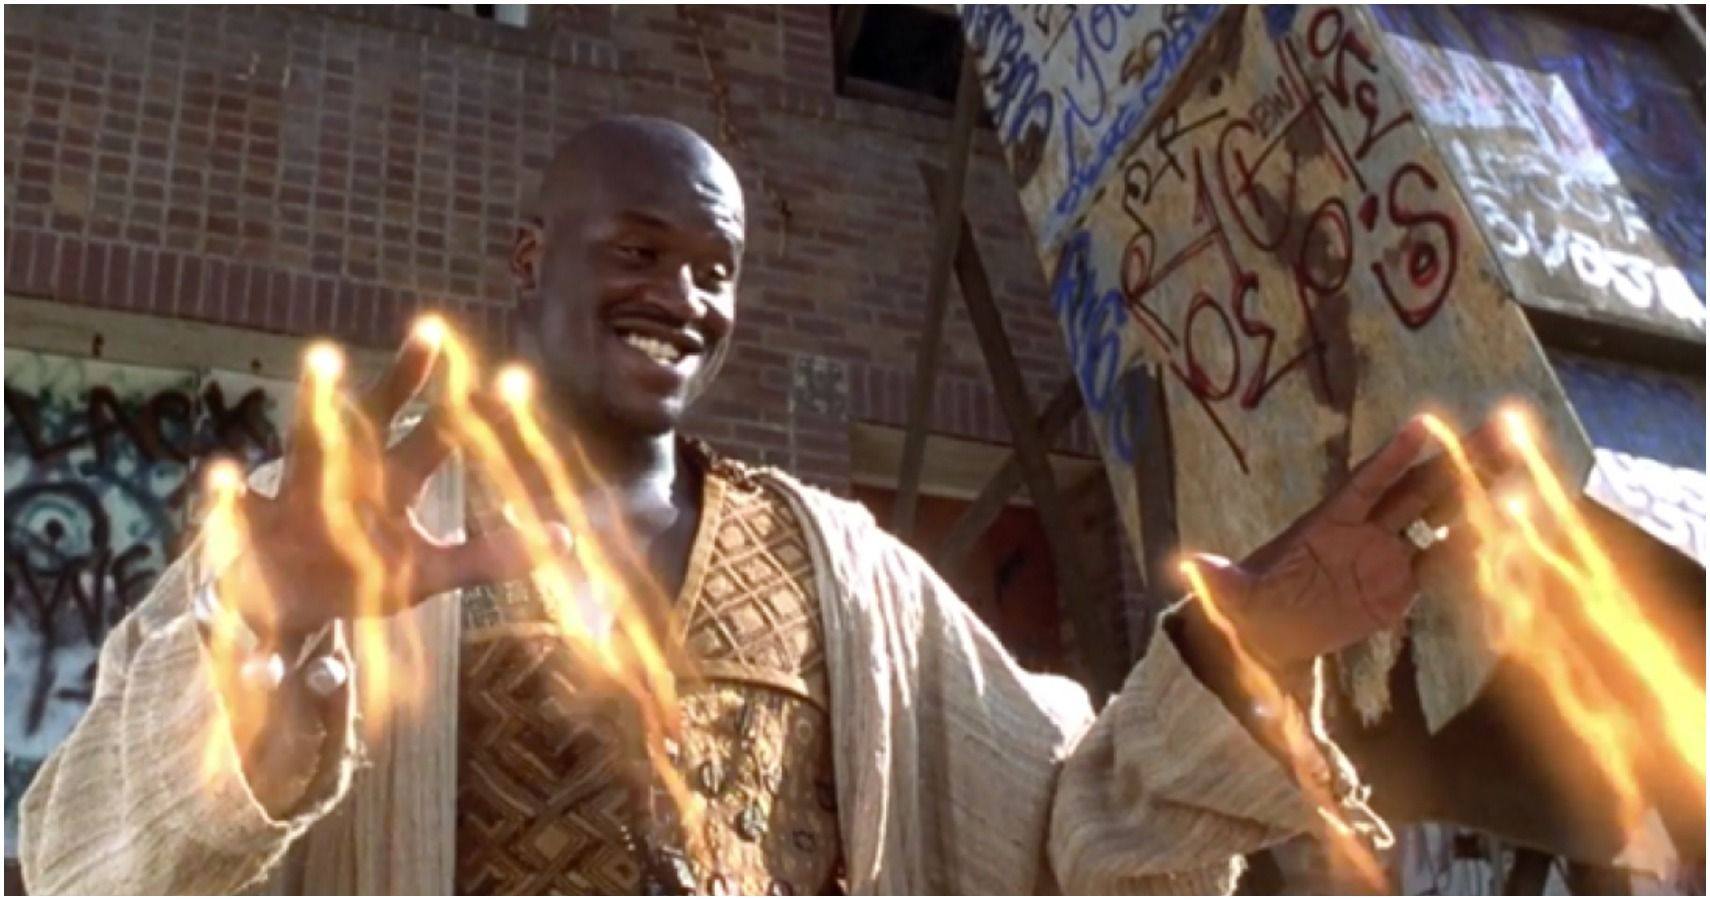 Kazaam: 10 Things People Never Knew About The Shaq Genie Movie